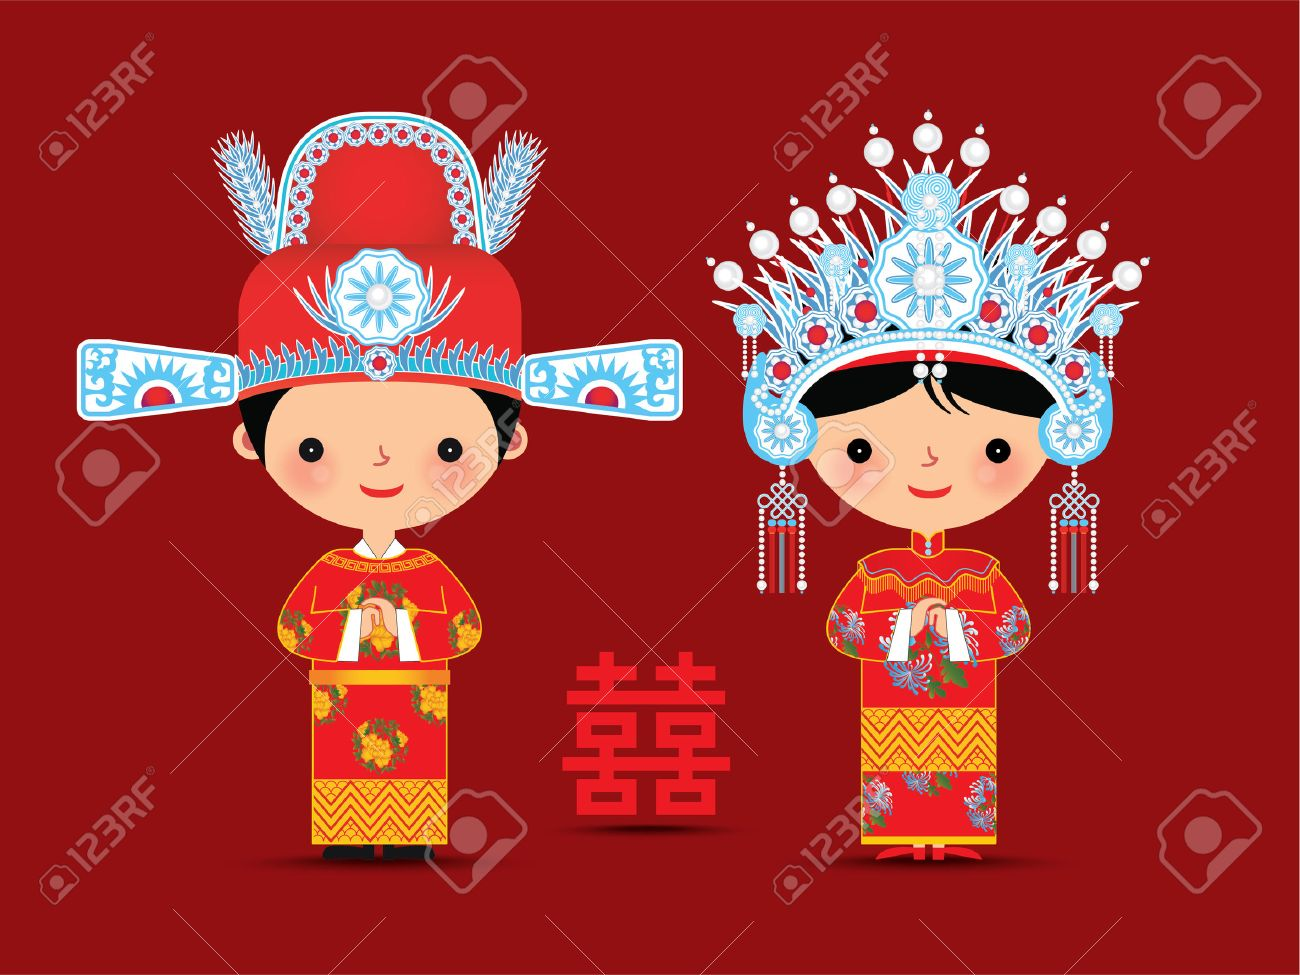 Chinese bride and groom cartoon wedding with double happiness symbol - 50268830